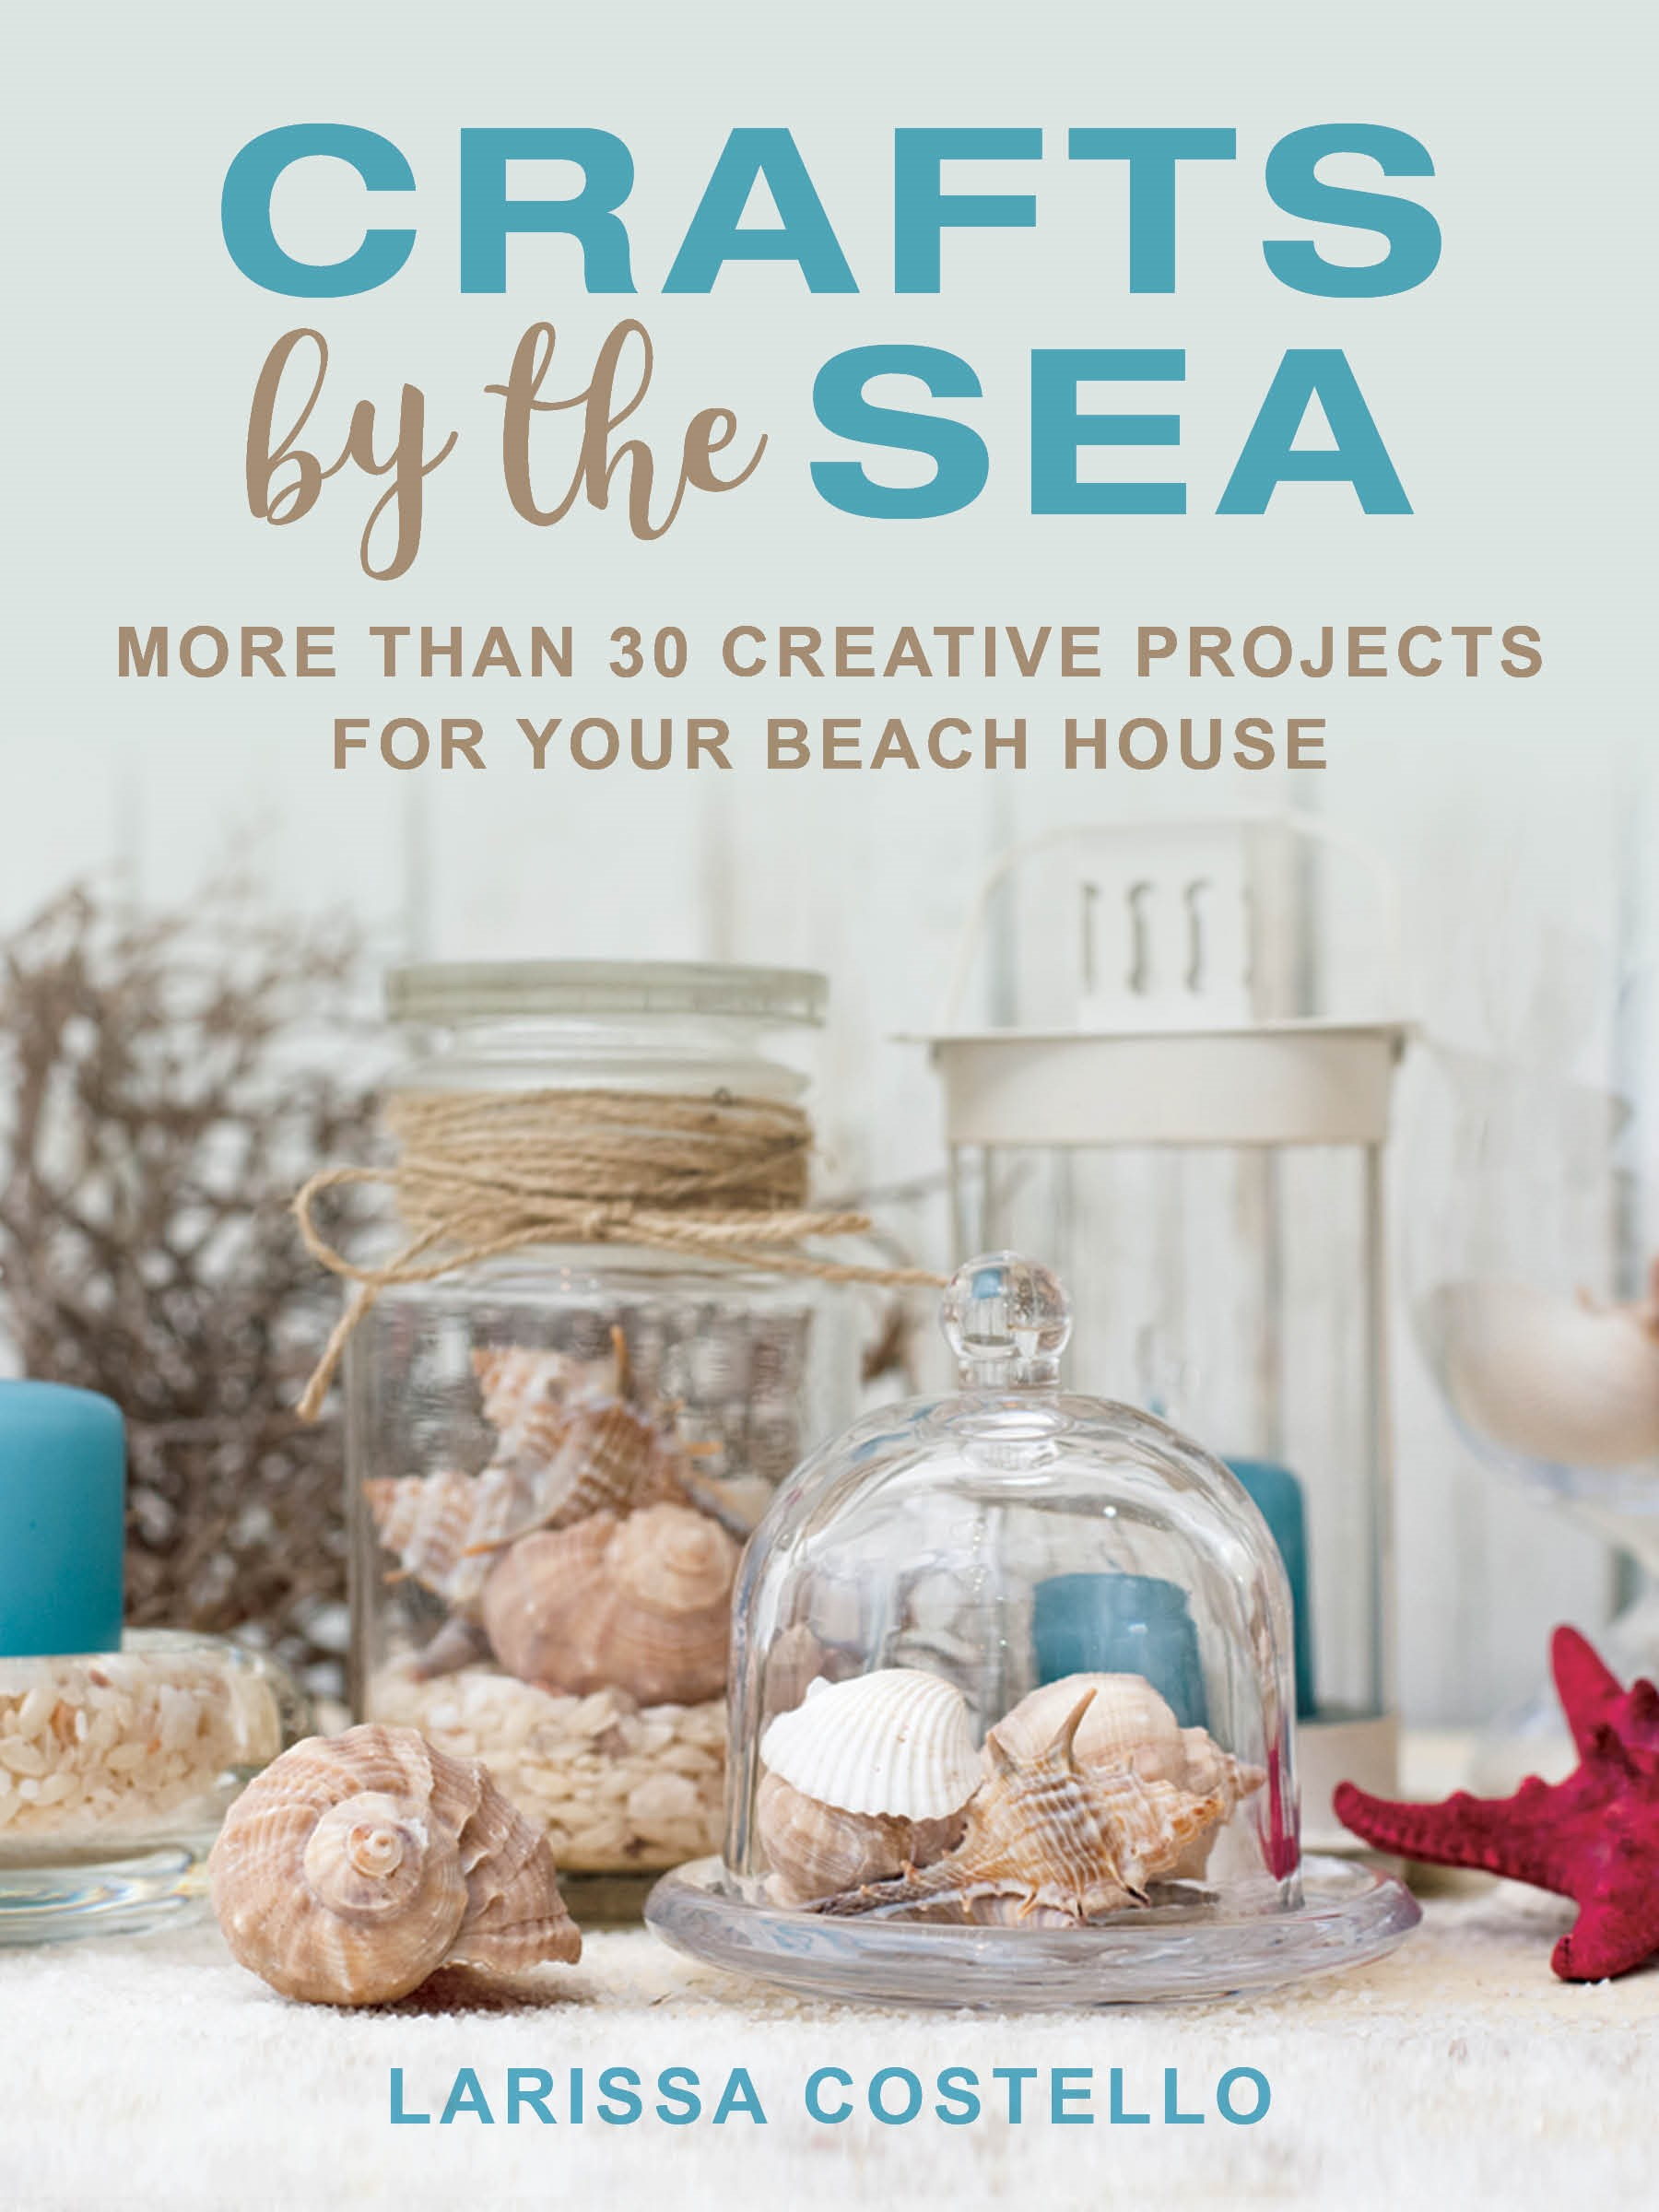 Crafts by the Sea.jpg